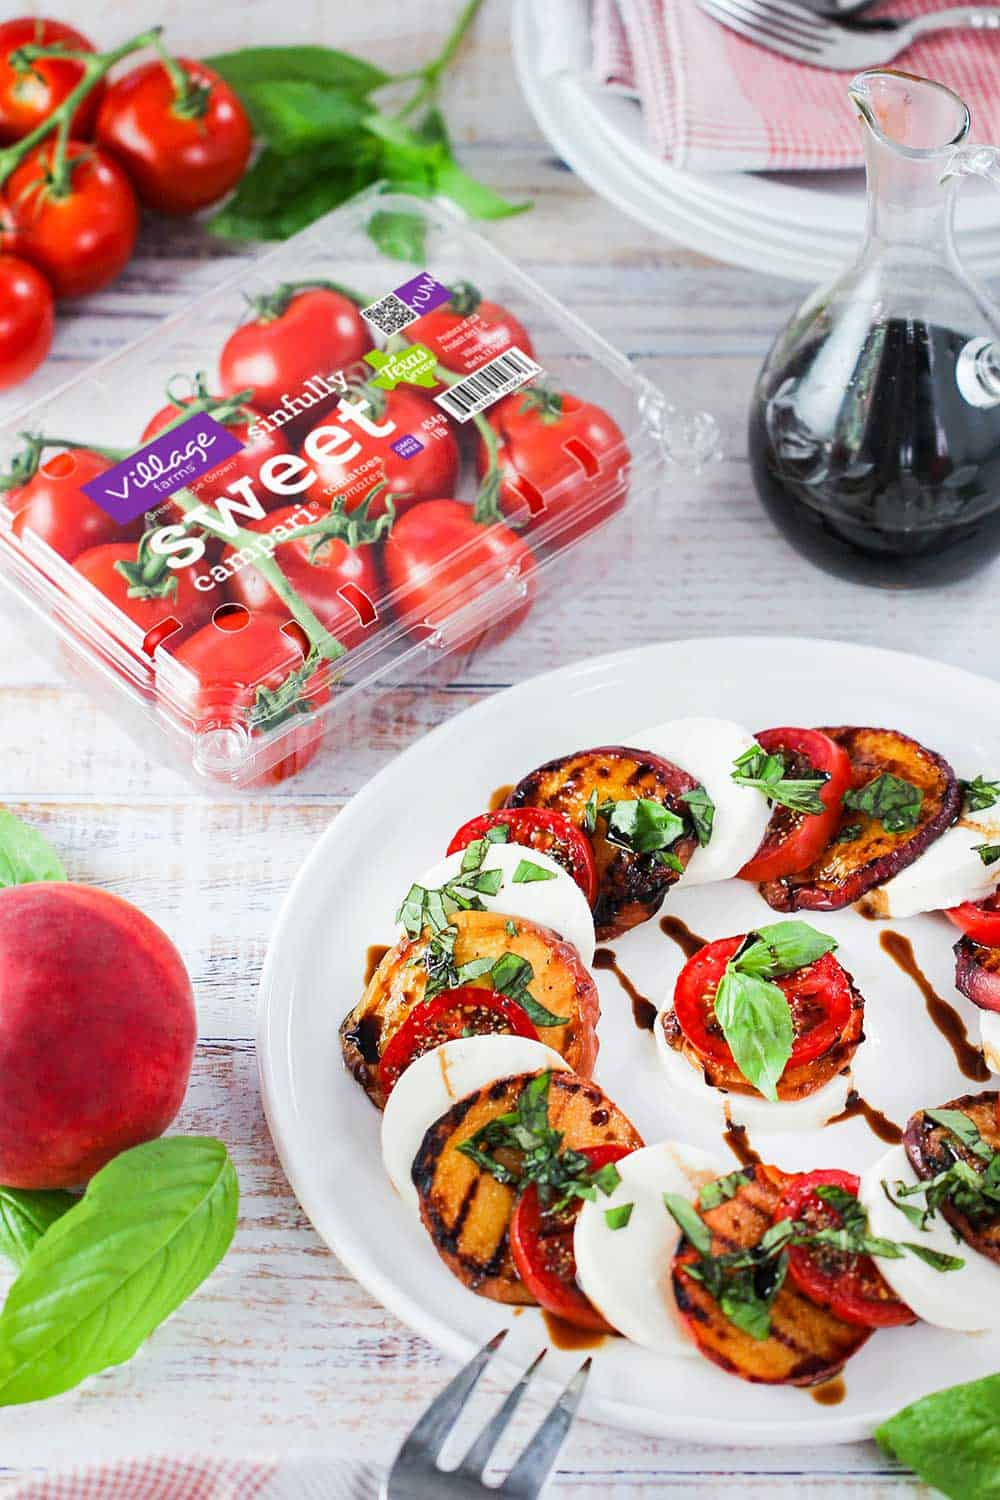 Caprese salad with grilled peaches on a white plate next to a package of campari tomatoes.